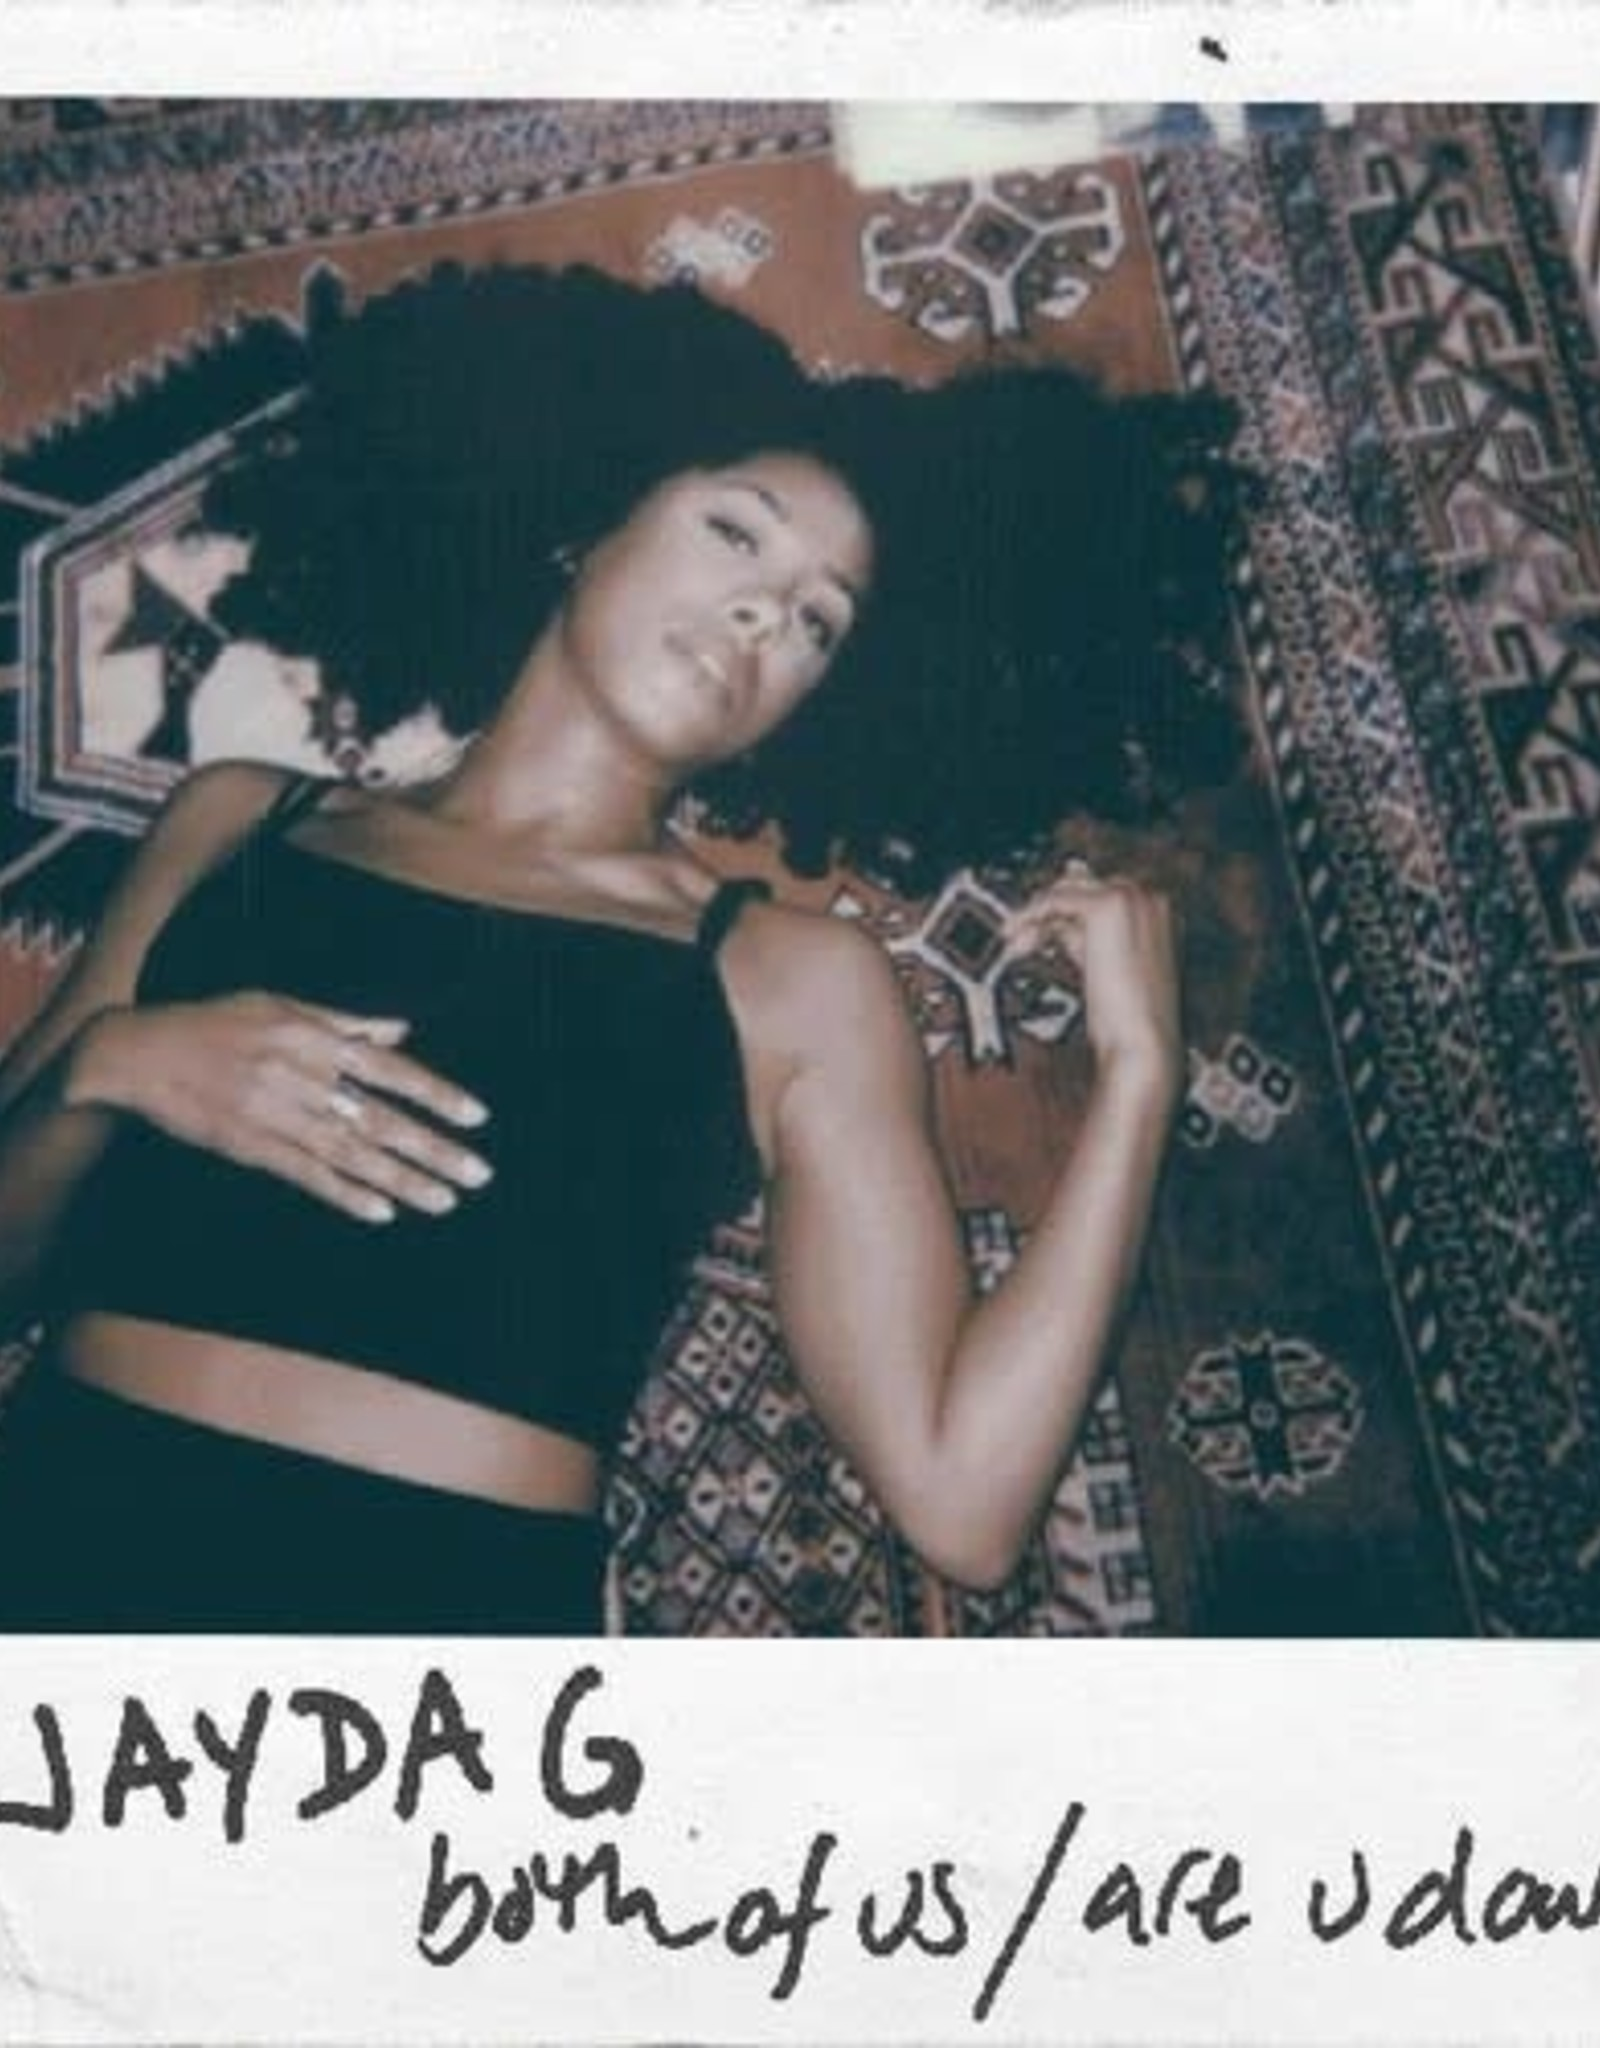 Jayda G - Both of Us /Are You Down